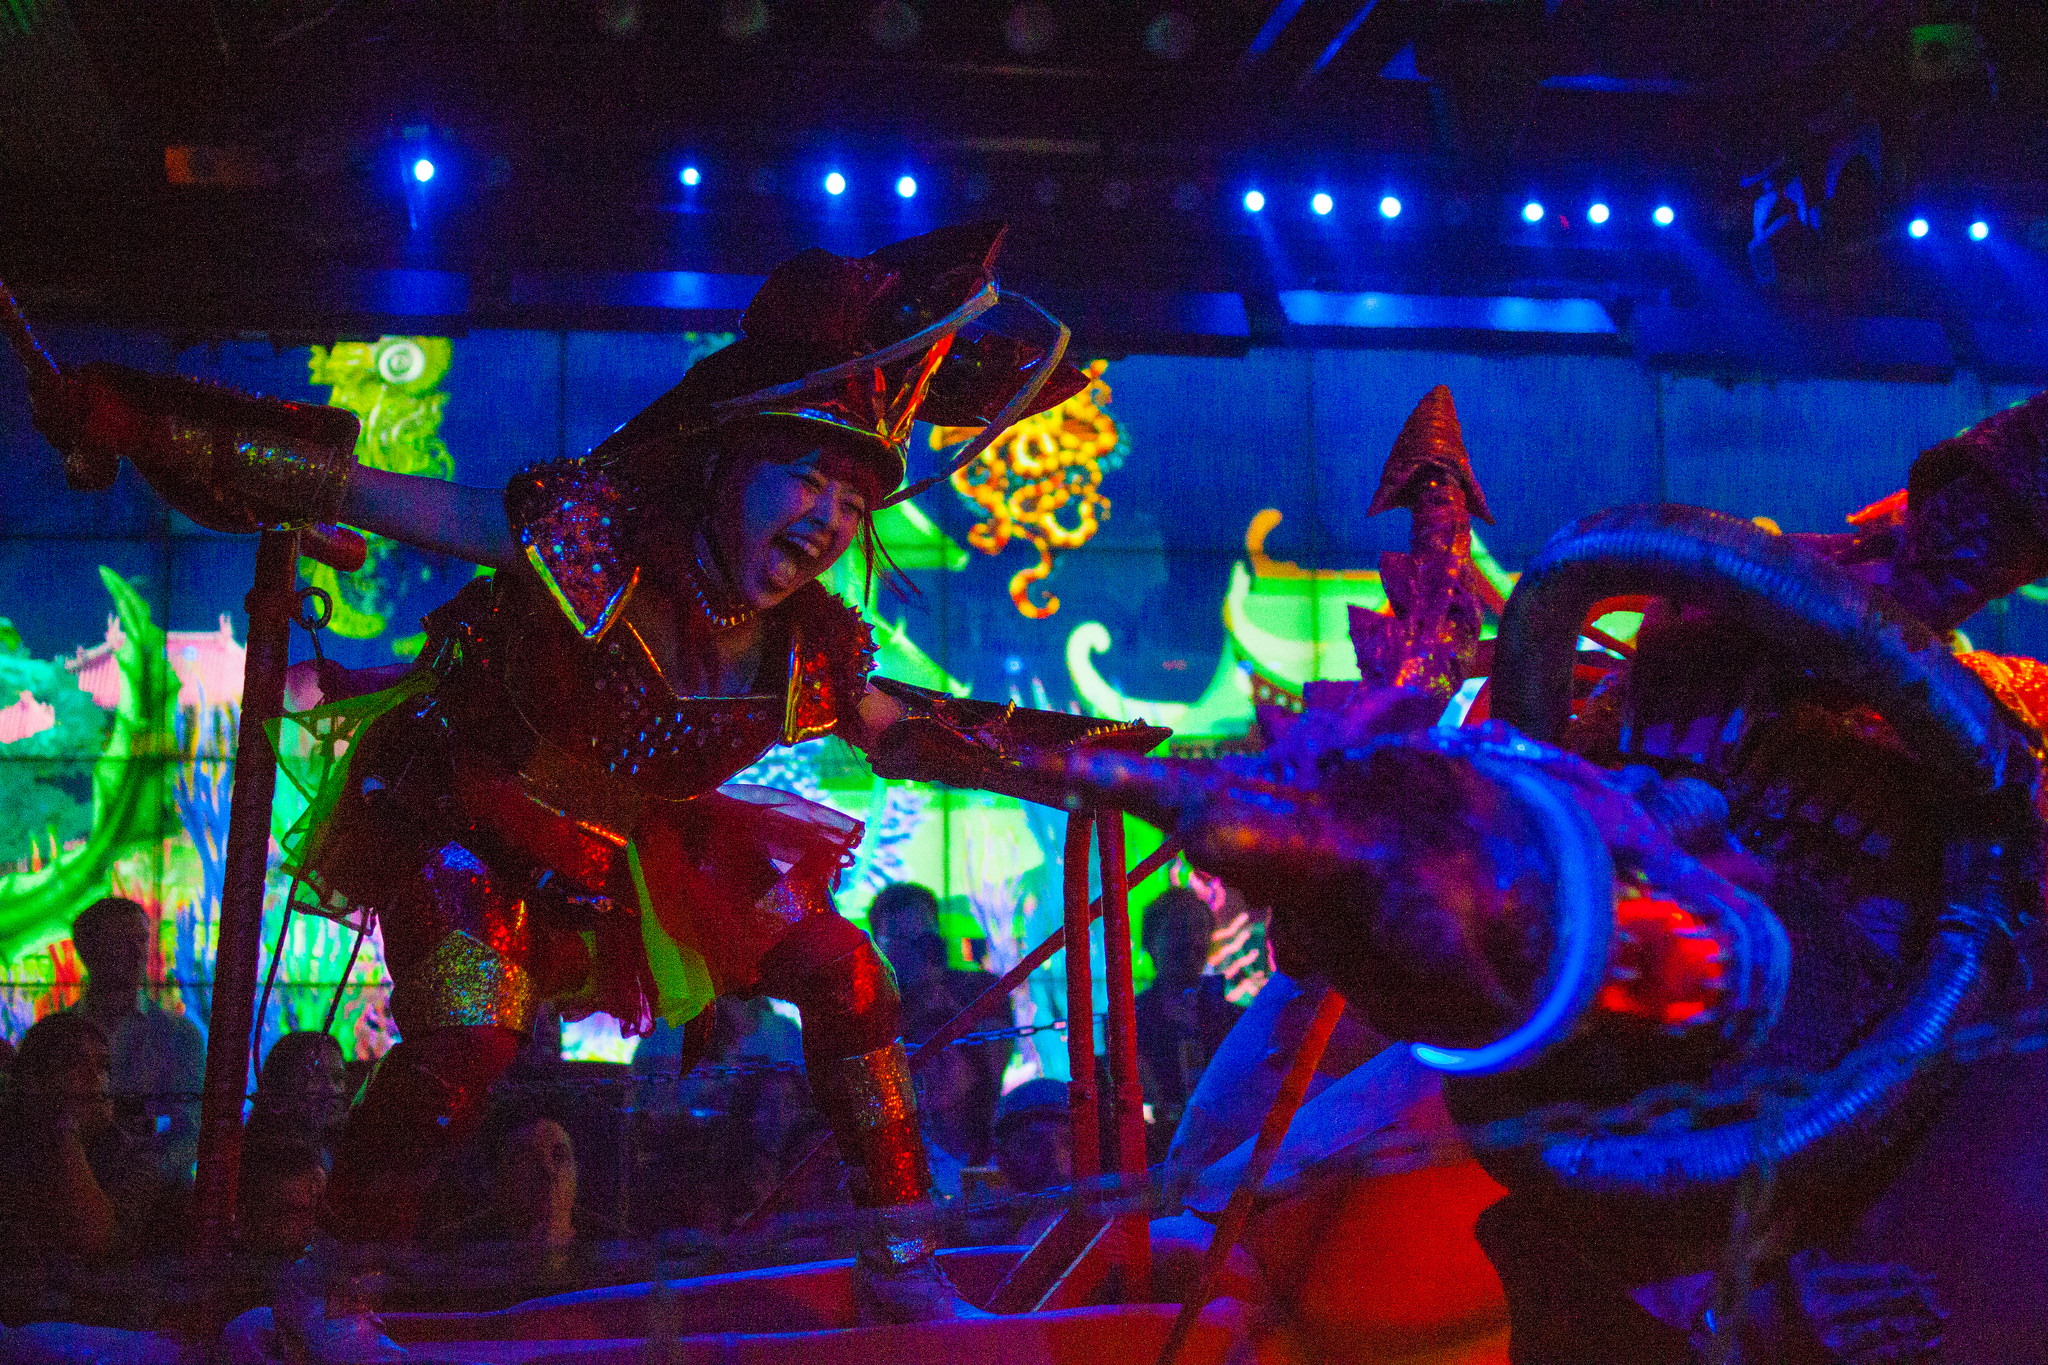 Guide to the Robot Restaurant Experience, the Most Exciting and Exhilarating Show in Tokyo